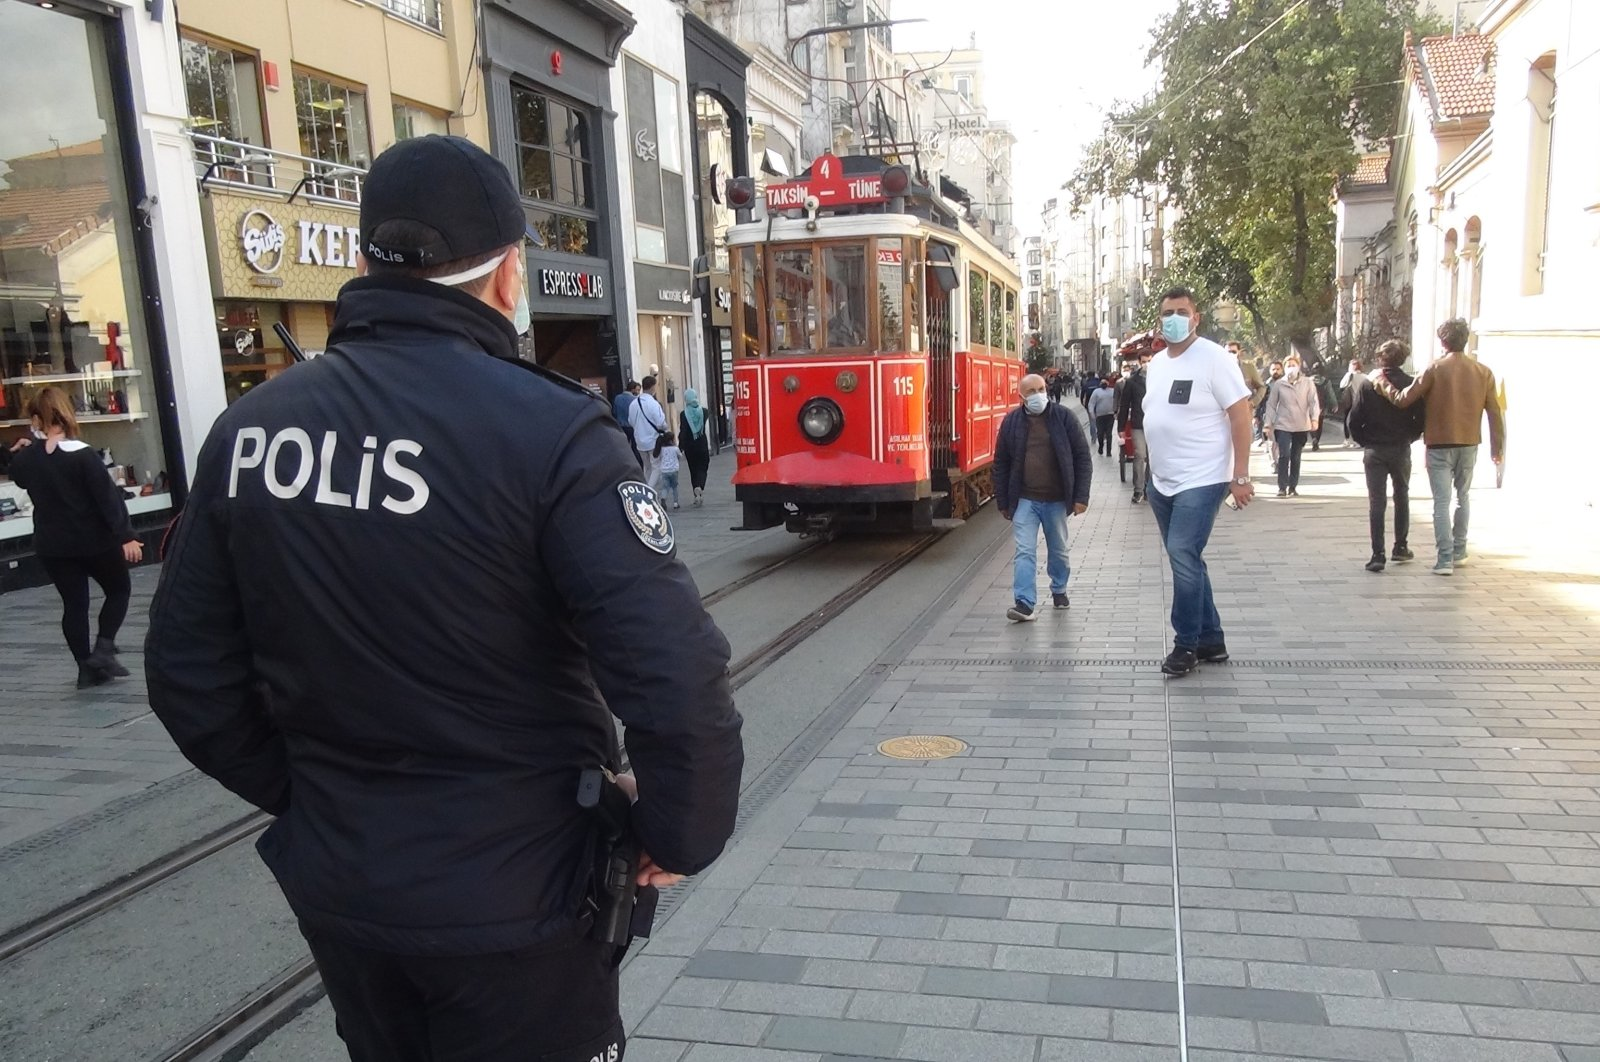 A police officer inspects people against violation of COVID-19 rules on Istiklal Avenue, in Istanbul, Turkey, Oct. 21, 2020. (İHA Photo)